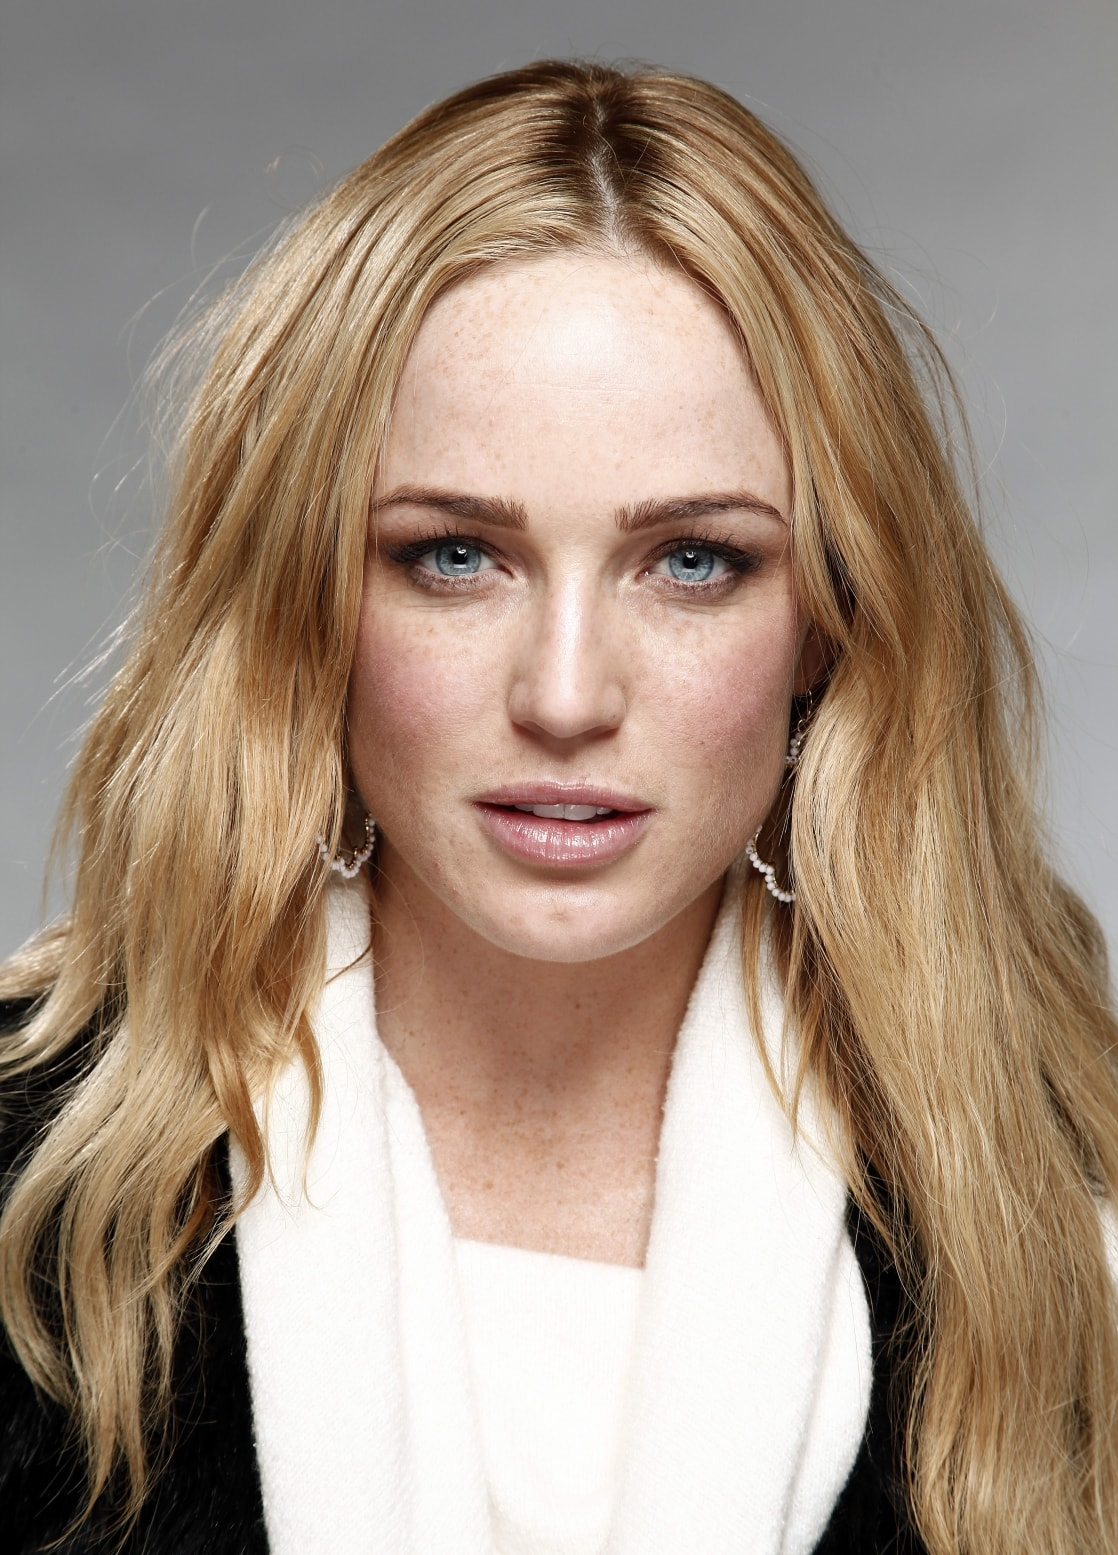 Caity Lotz for mobile